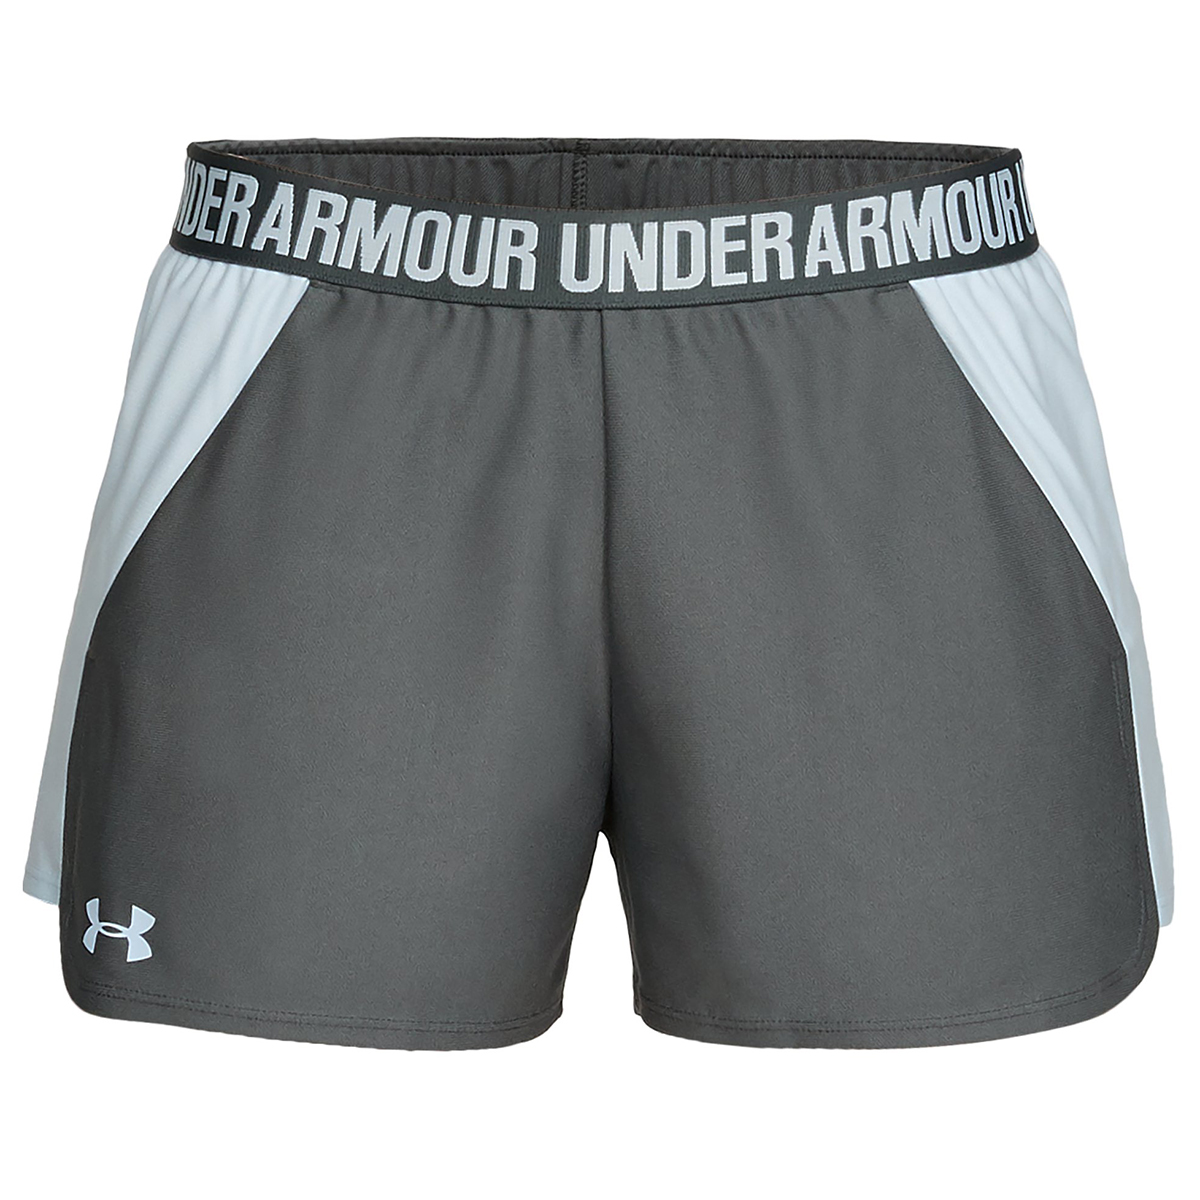 Under Armour Women's Play Up Shorts - Black, M